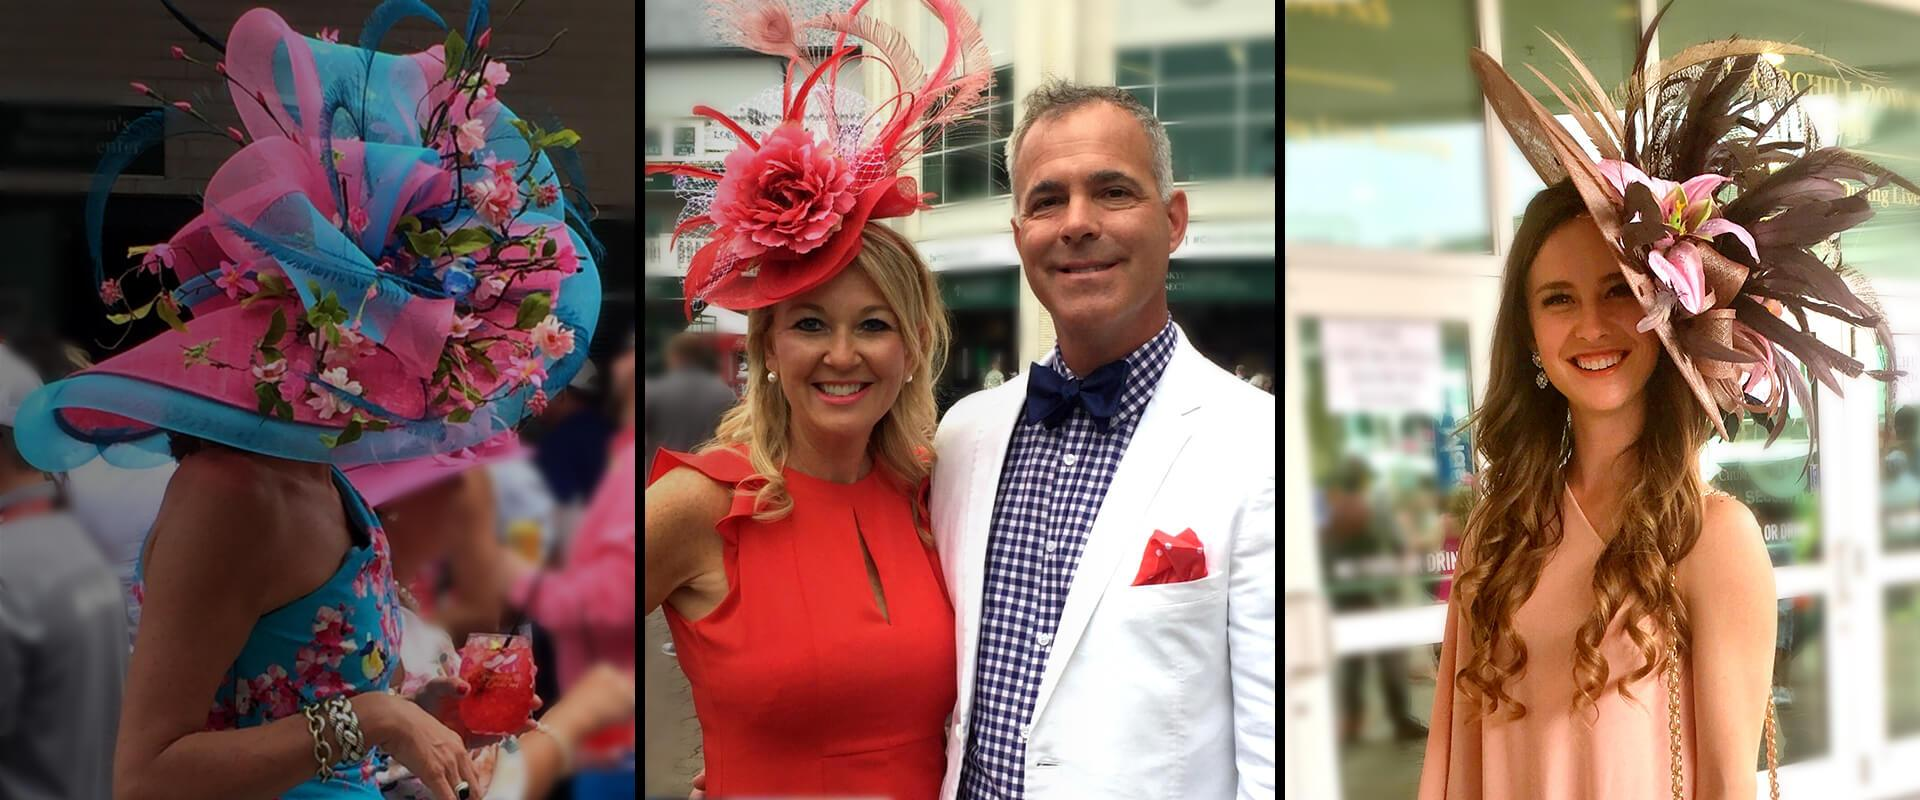 Three women wearing sinamay hats and a man dressed nicely at the Kentucky Derby